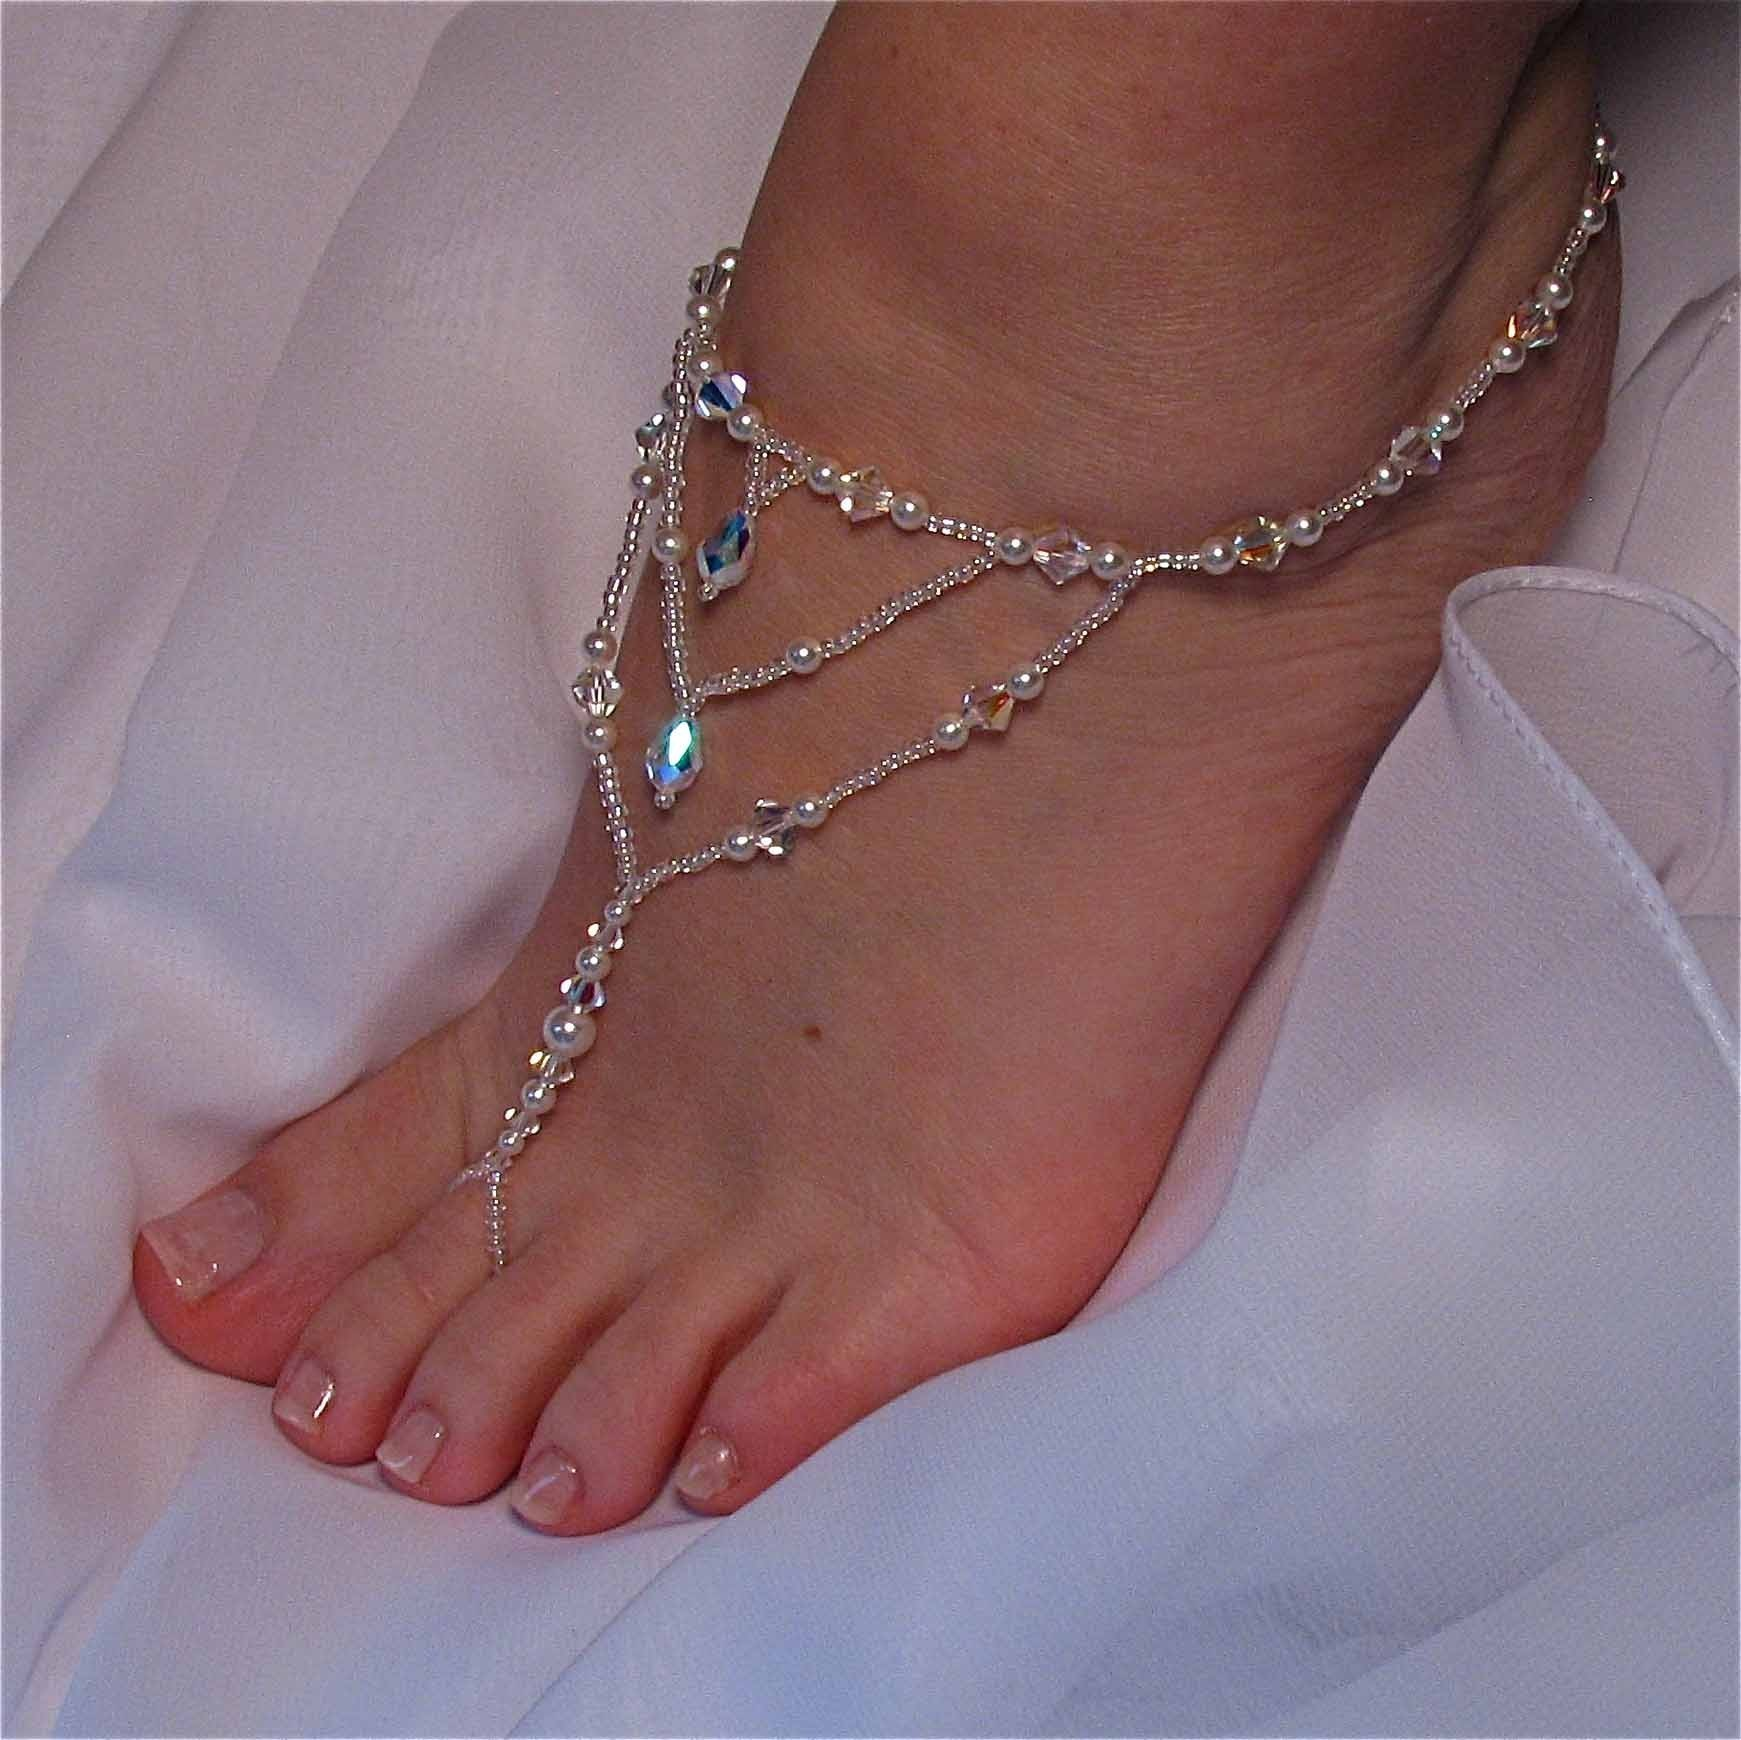 wedding barefoot sandals 21 Beach Wedding Barefoot Sandals 2015/16 21 Beach Wedding Barefoot Sandals 2015/16 wedding barefoot sandals